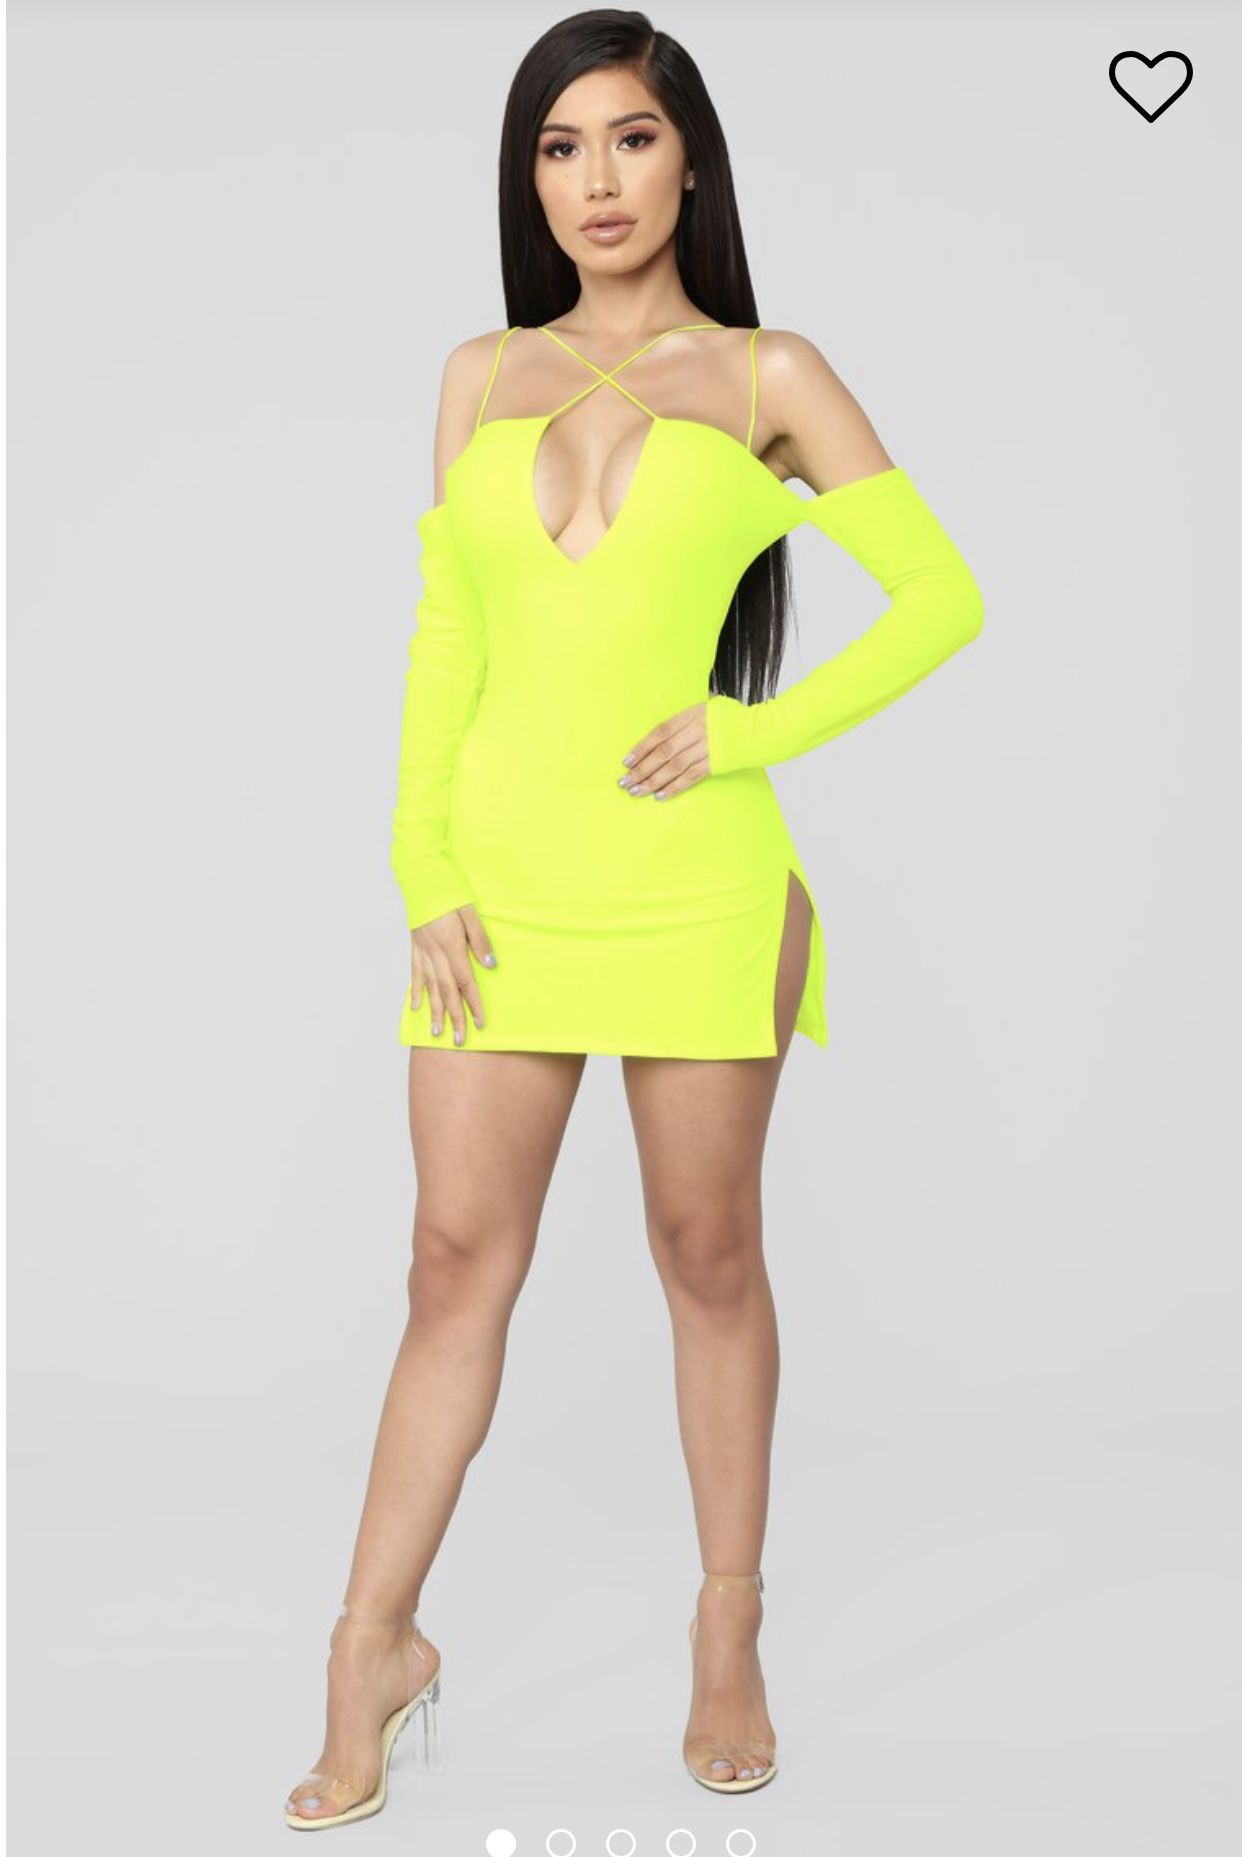 Idea by Andy McCaulay on Ouch Neon yellow dresses, Mini